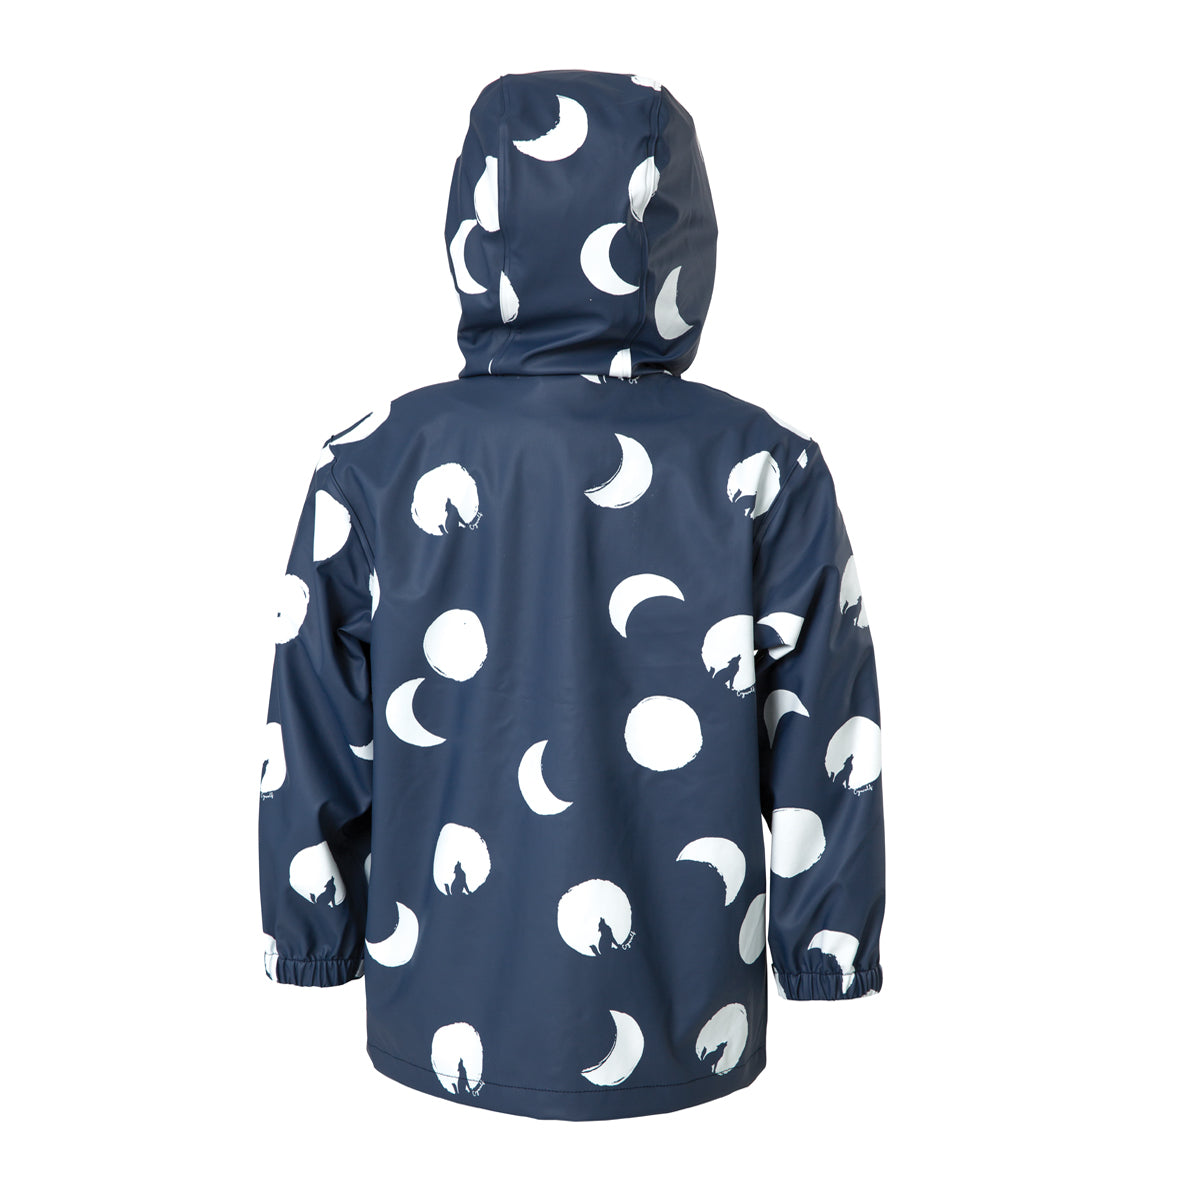 crywolf play jacket children's rain coat blue moon back